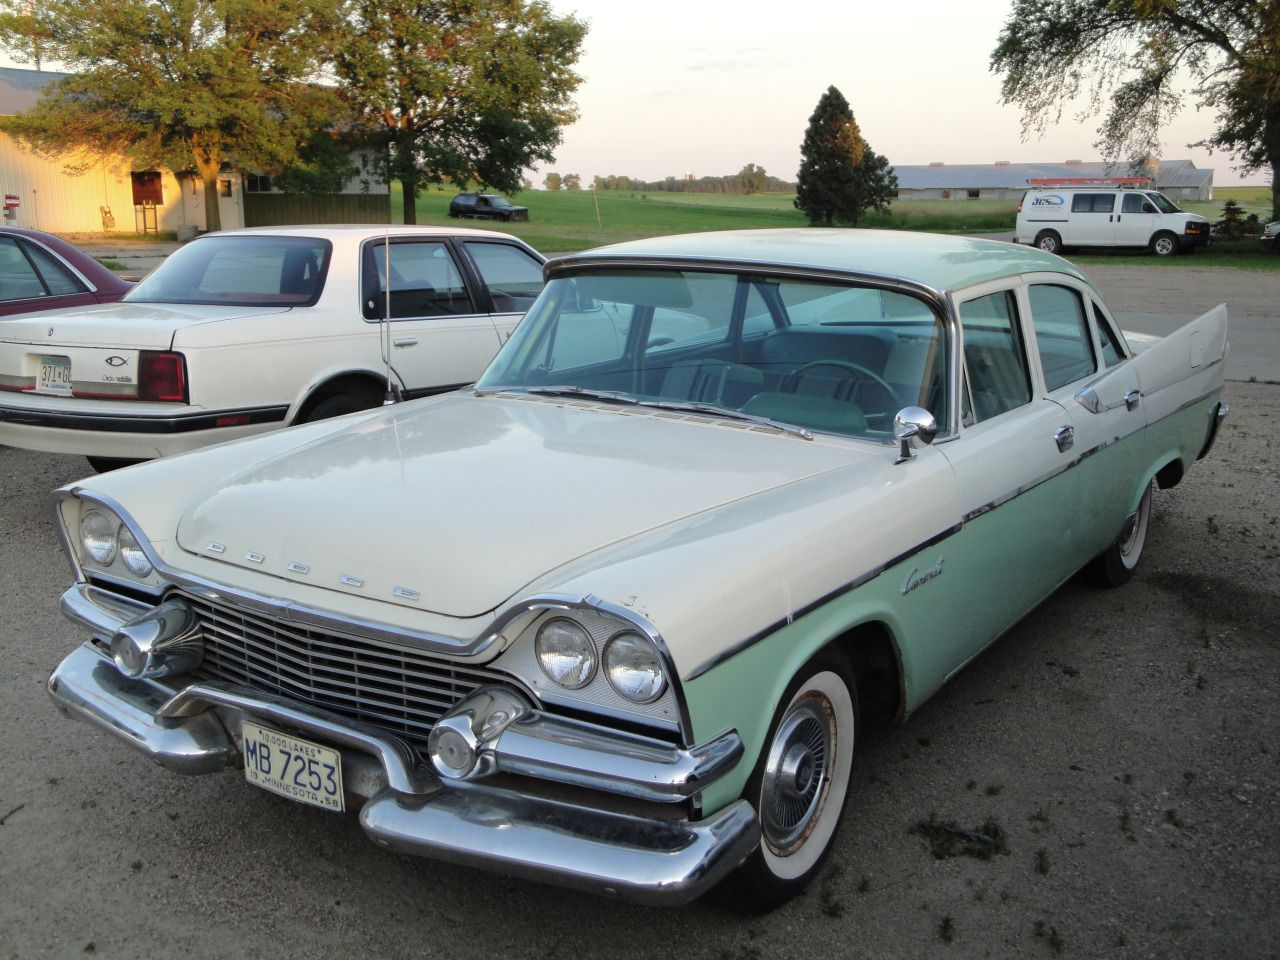 clayspur : dvs1mn: Cars of 1958 Part II: After WWII auto...